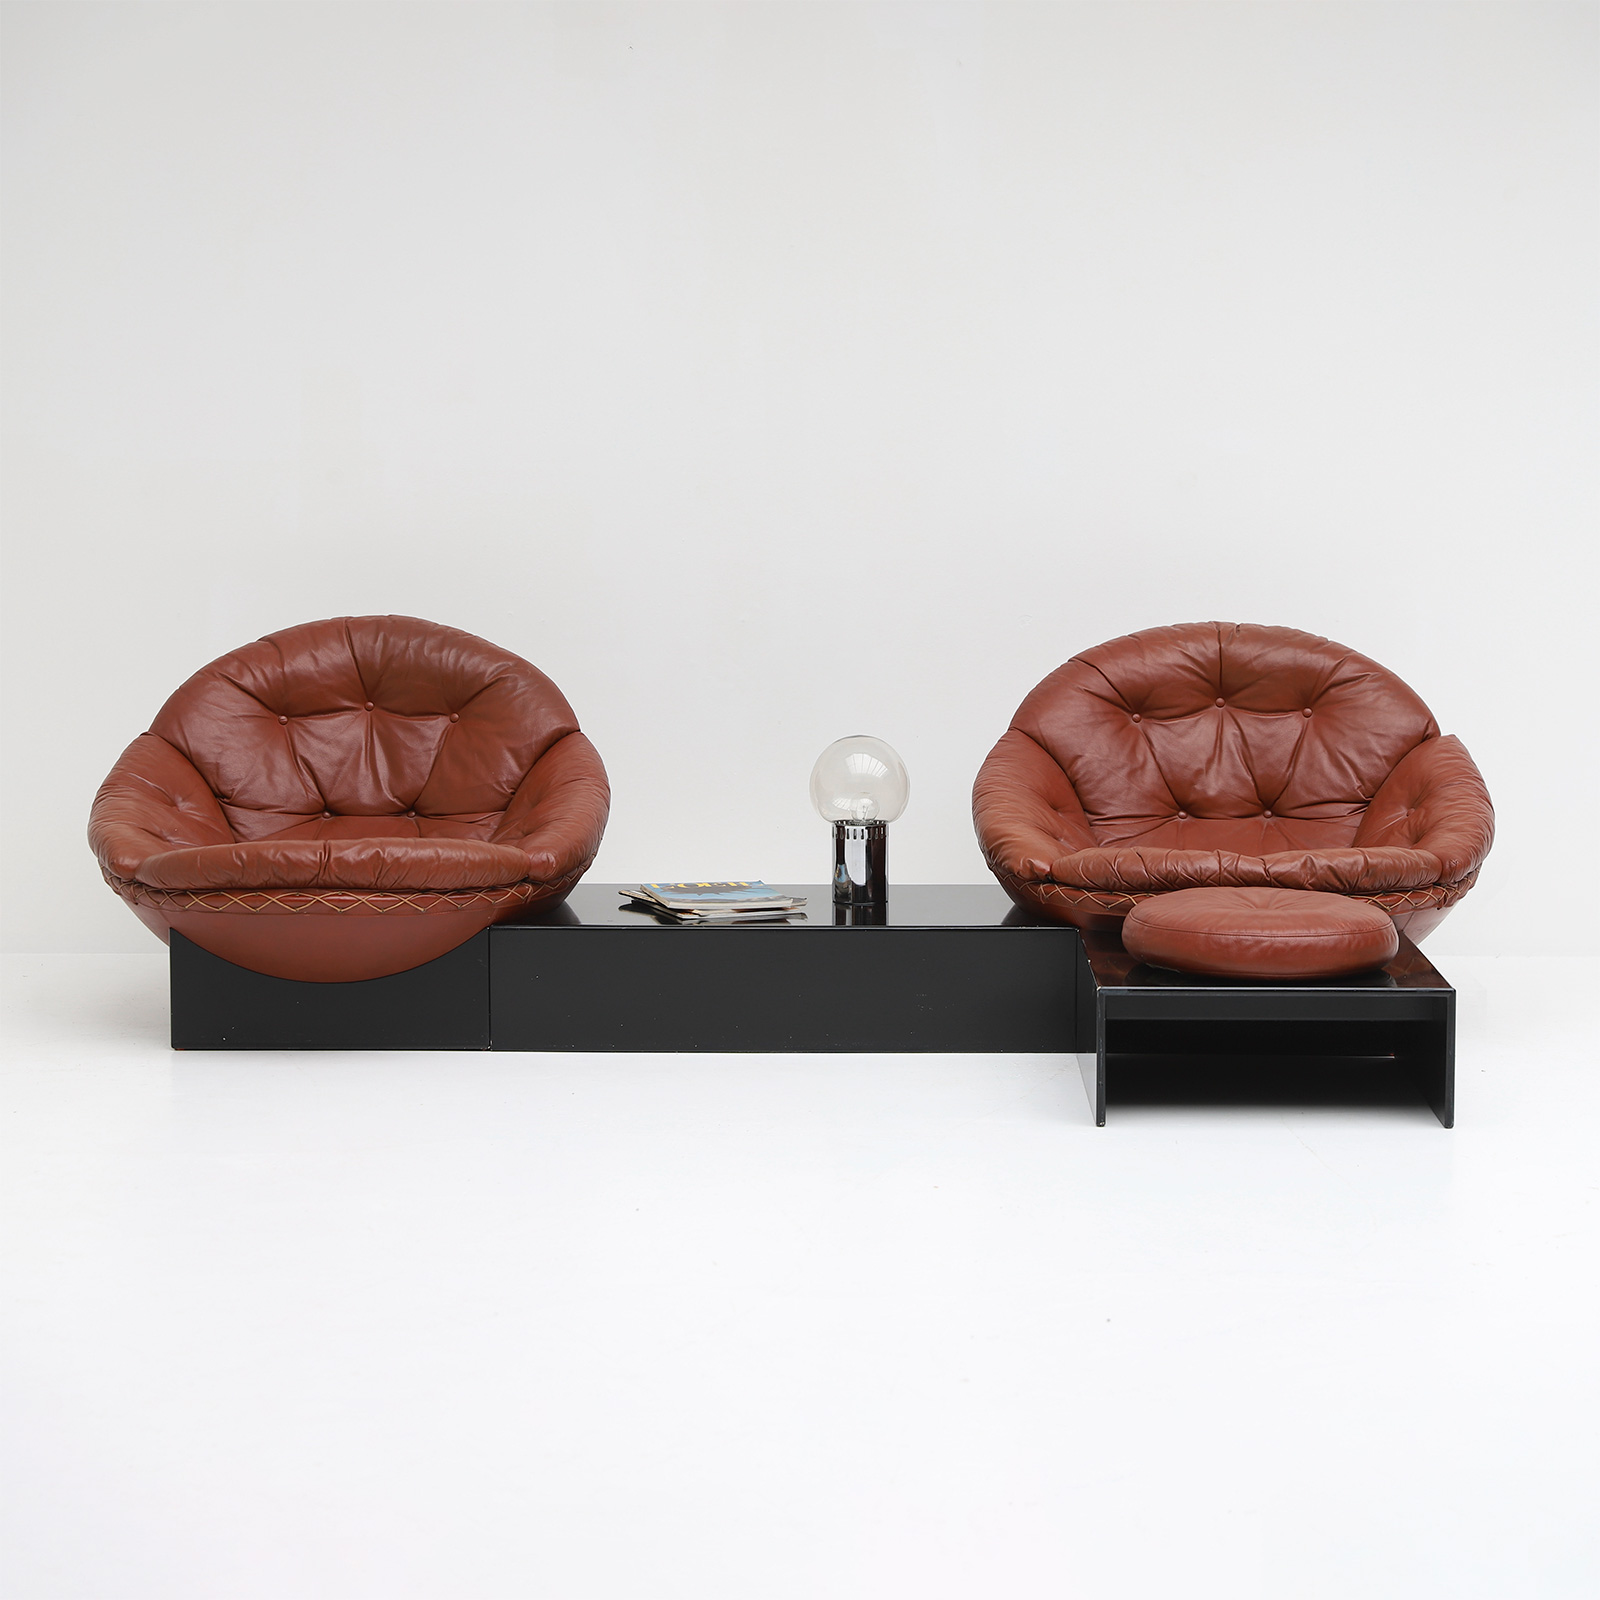 Leather Lounge Chairs by Illum Wikkelso for Ryesberg 1970s